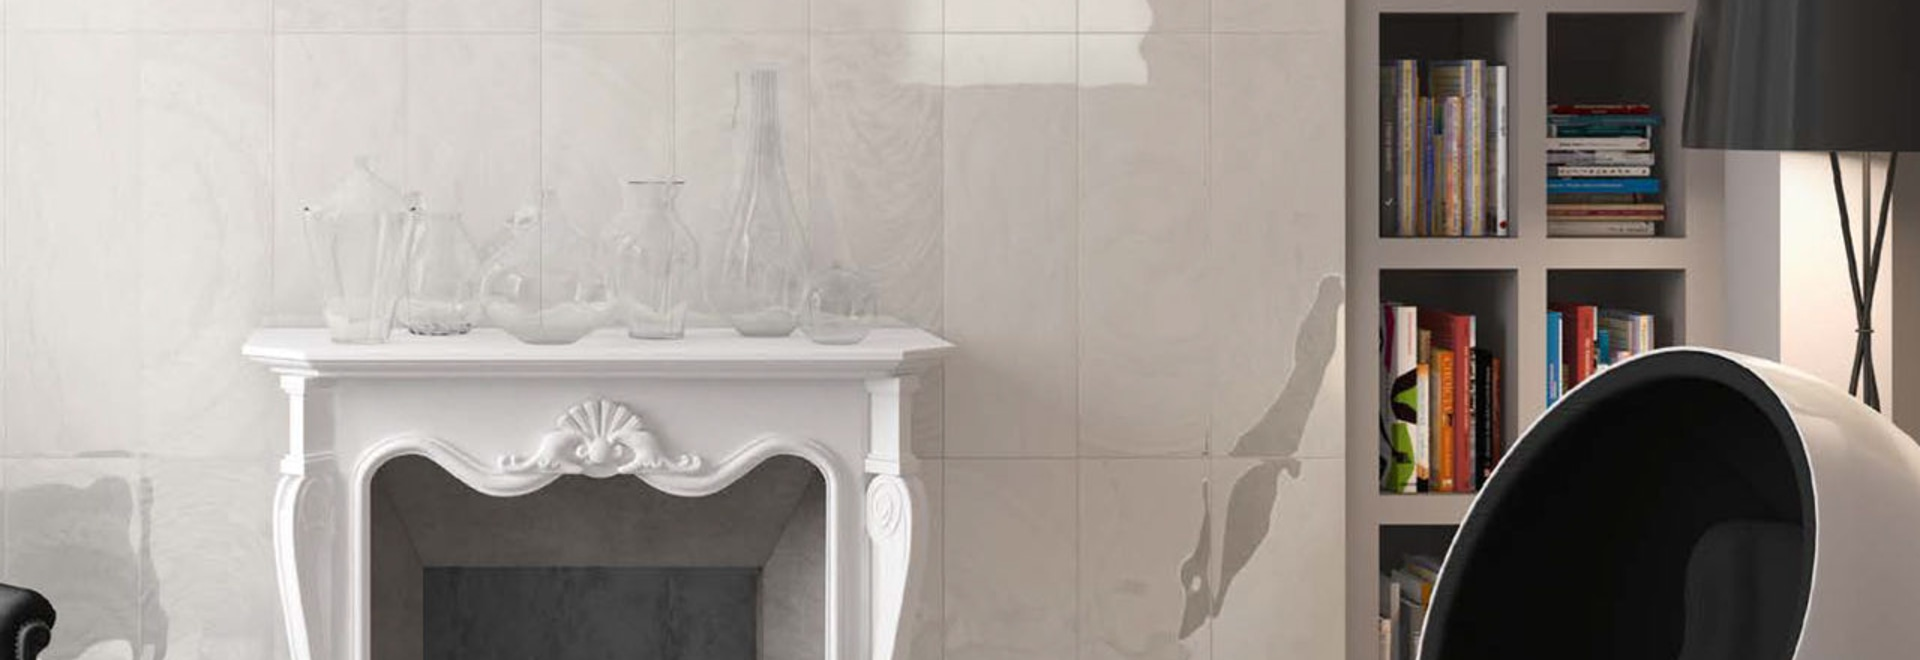 NEW: indoor tile by IRIS CERAMICA